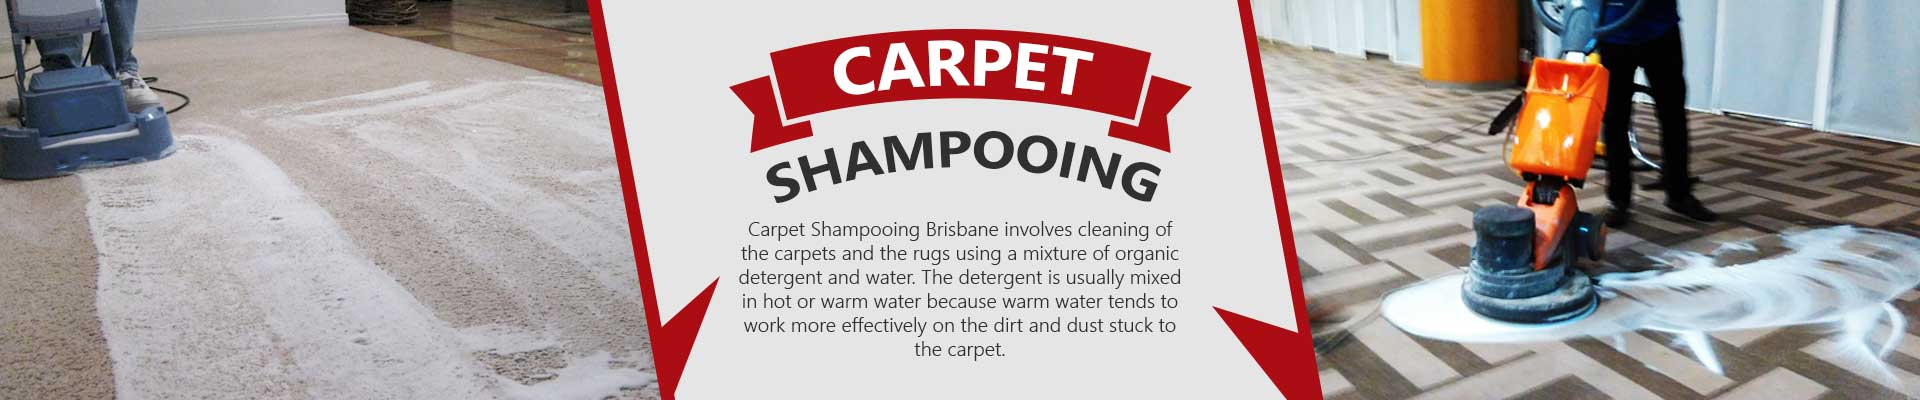 Carpet Shampooing Brisbane